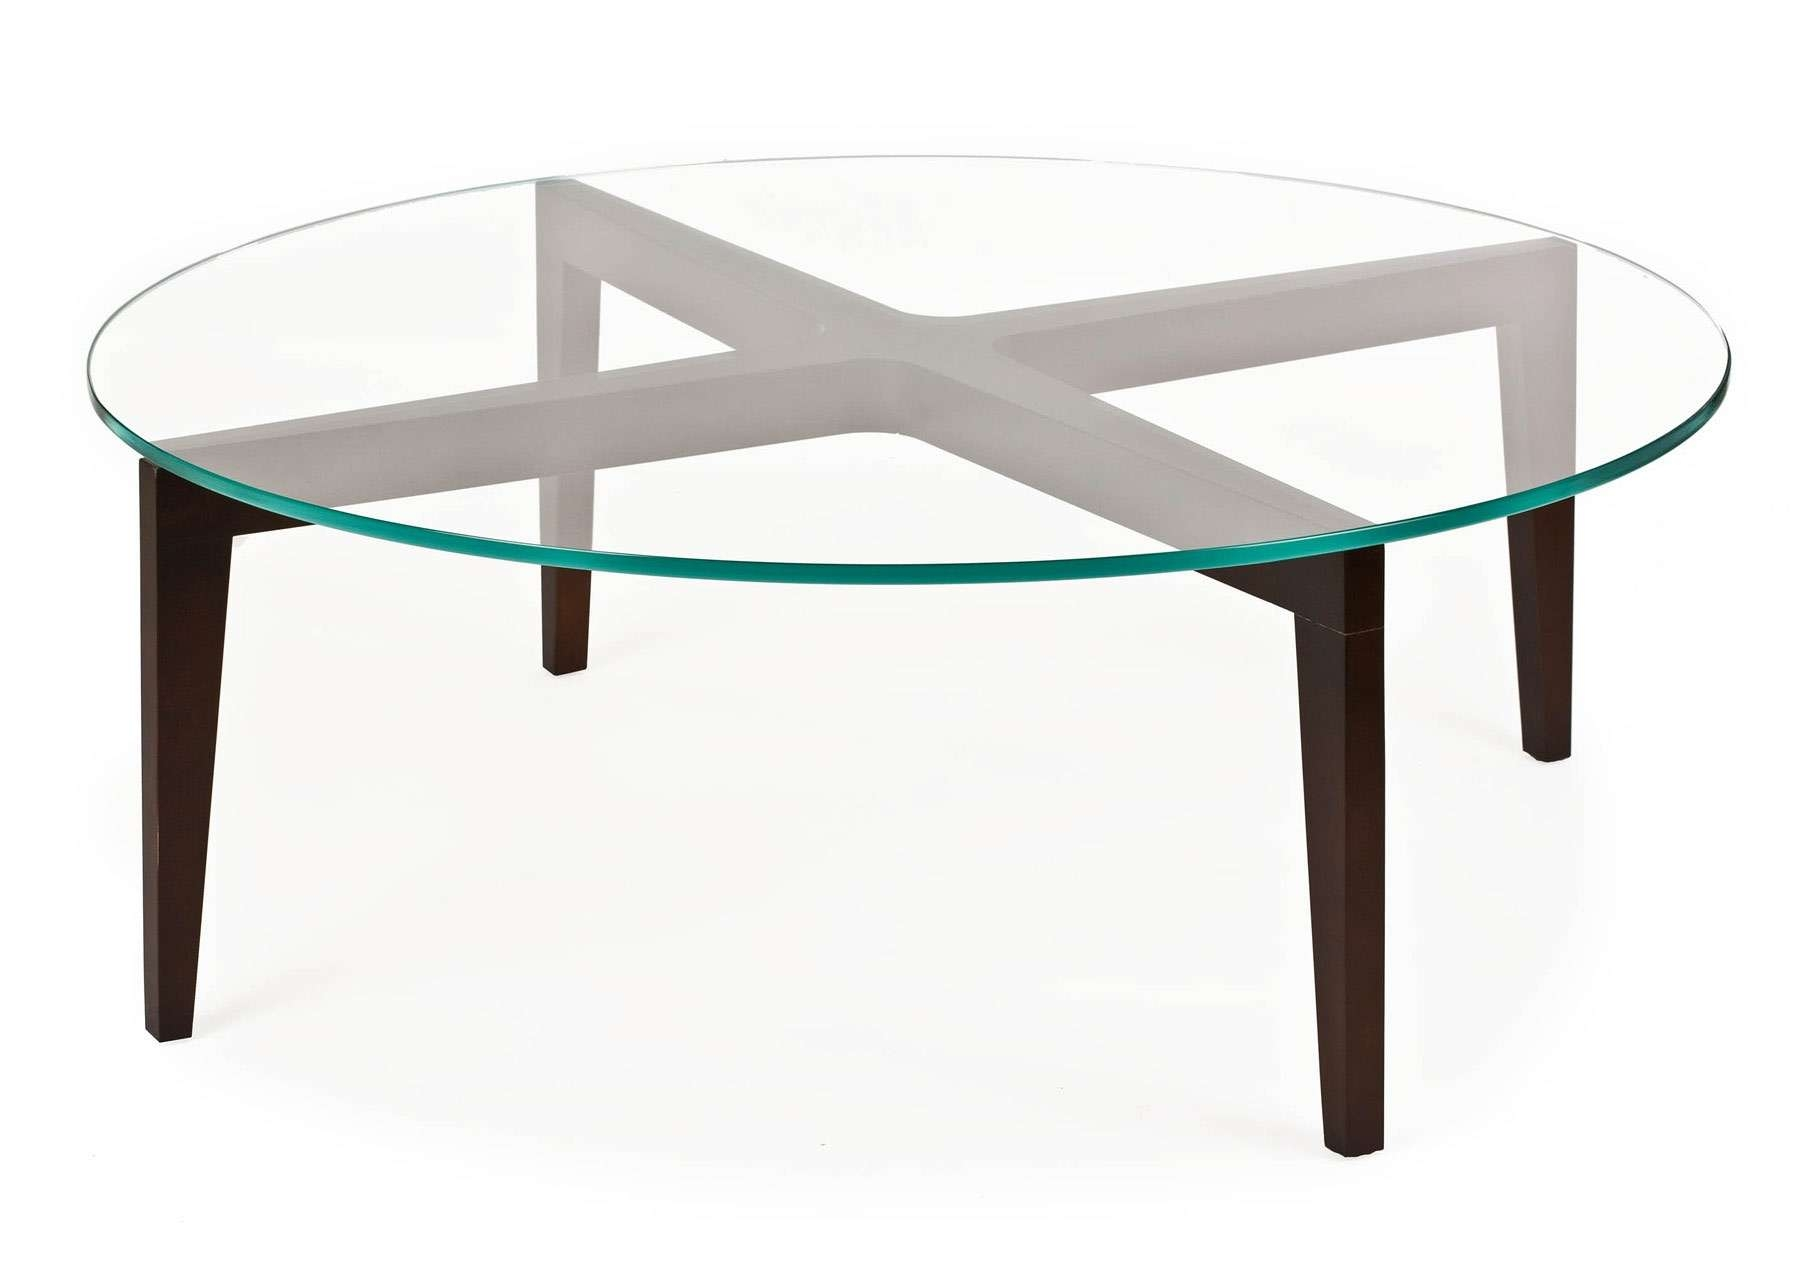 2017 Simple Glass Coffee Tables In Adorable Round Glass Coffee Table Wood Base For Home Interior (View 3 of 20)